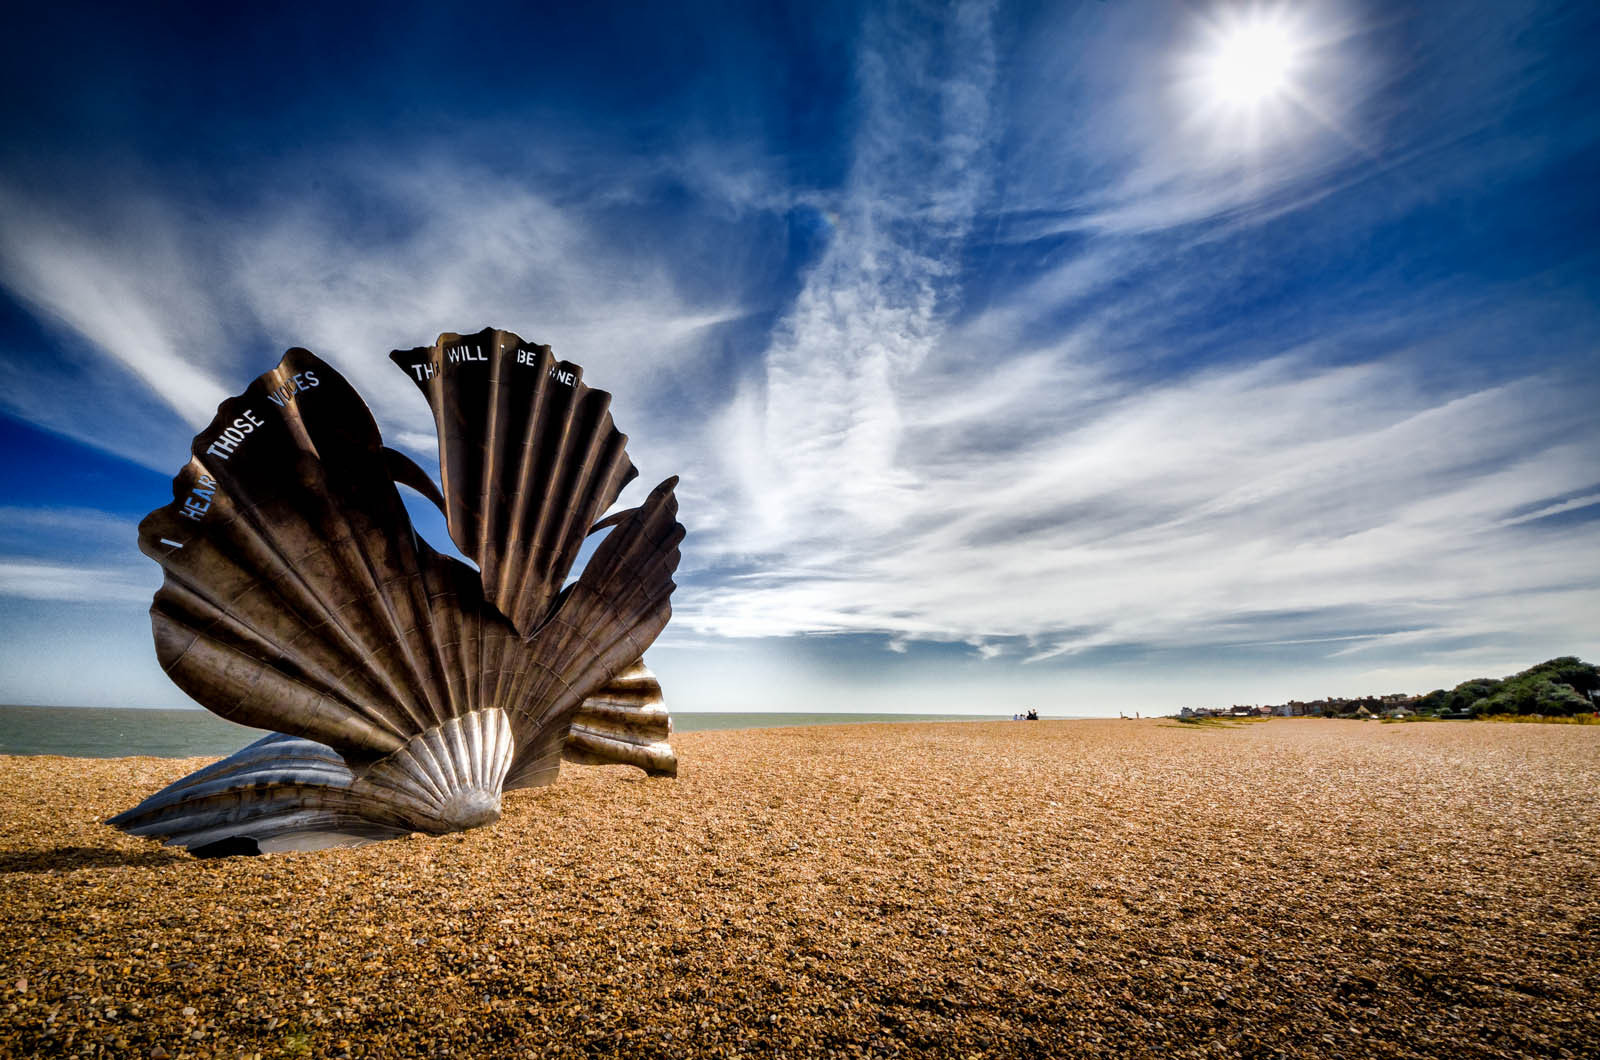 Photograph Aldeburgh Seashell by John C. on 500px